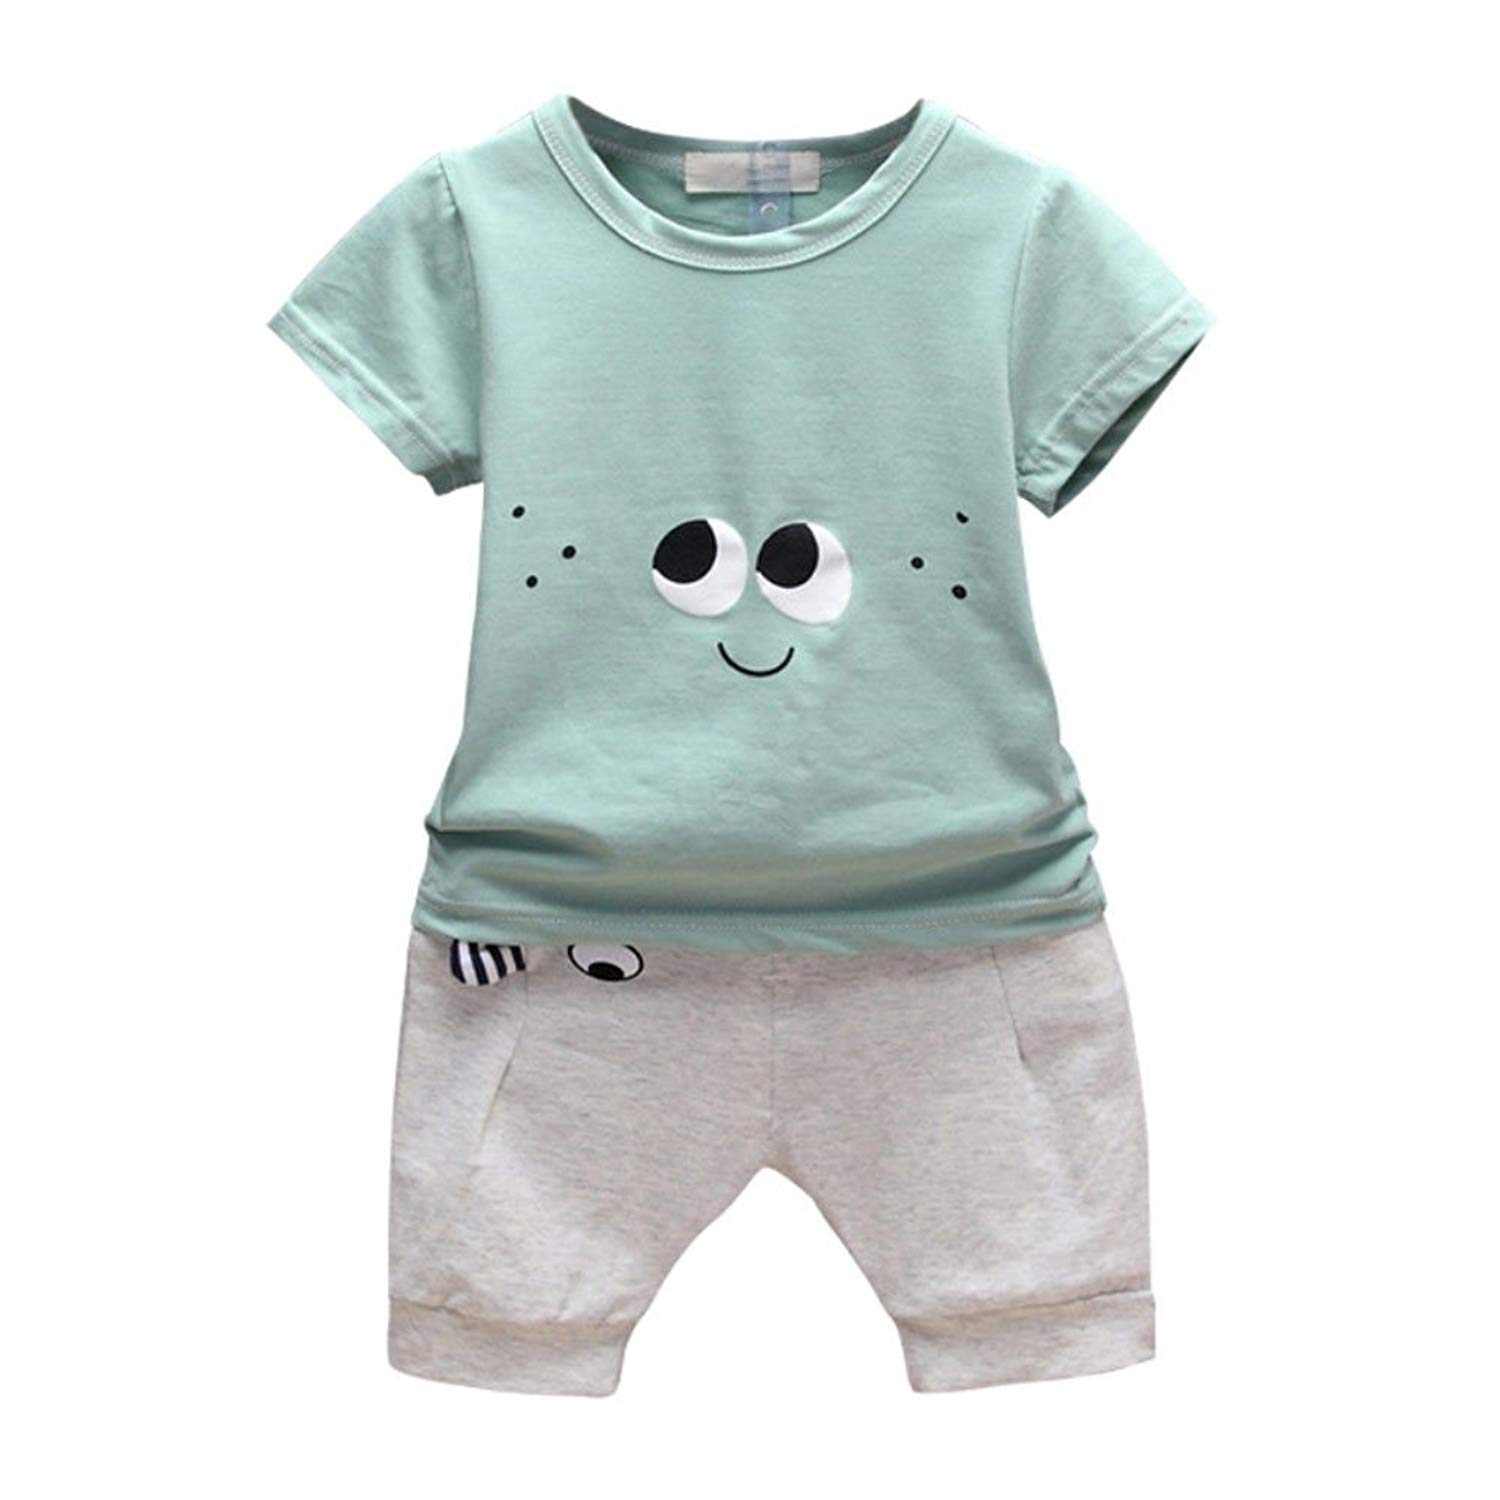 3973df78f2 Get Quotations · MiyaSudy Toddler Baby Boy Clothes Summer Sets T-Shirt Tops  + Short Fashion Outfits For